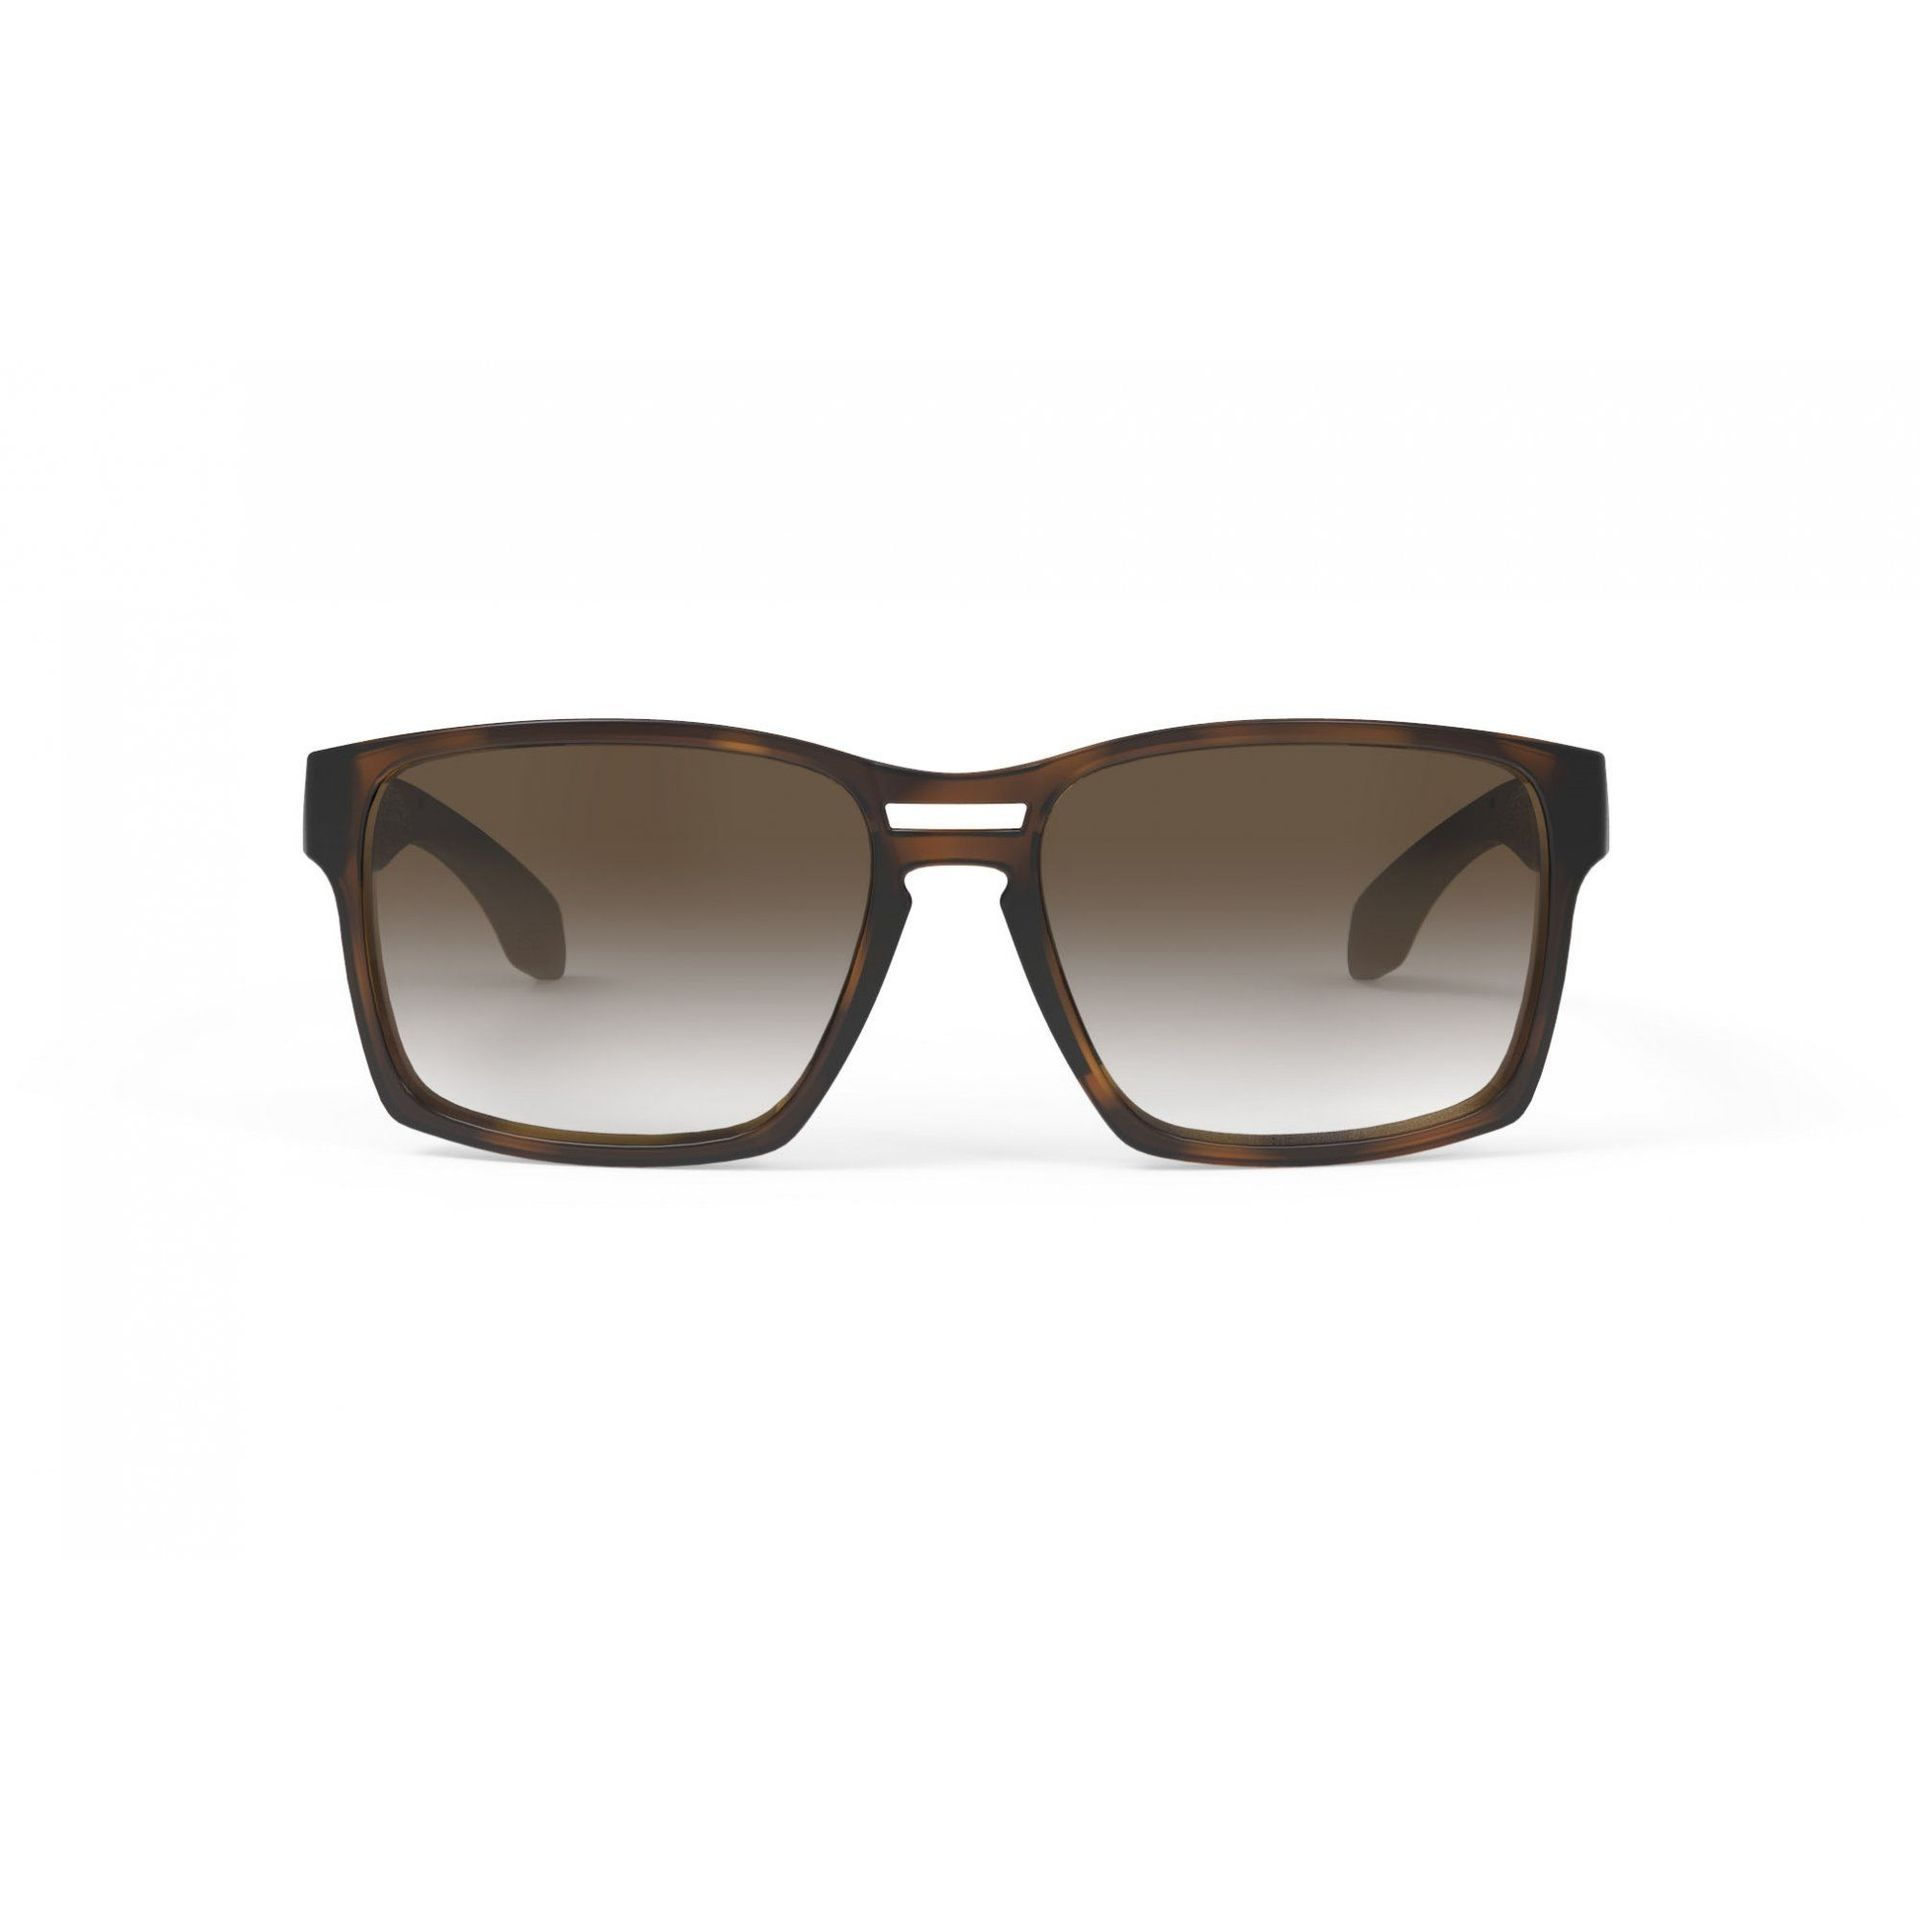 OKULARY RUDY PROJECT SPINAIR 57 DEMI TURTLE + BROWN DEG SP573650 2